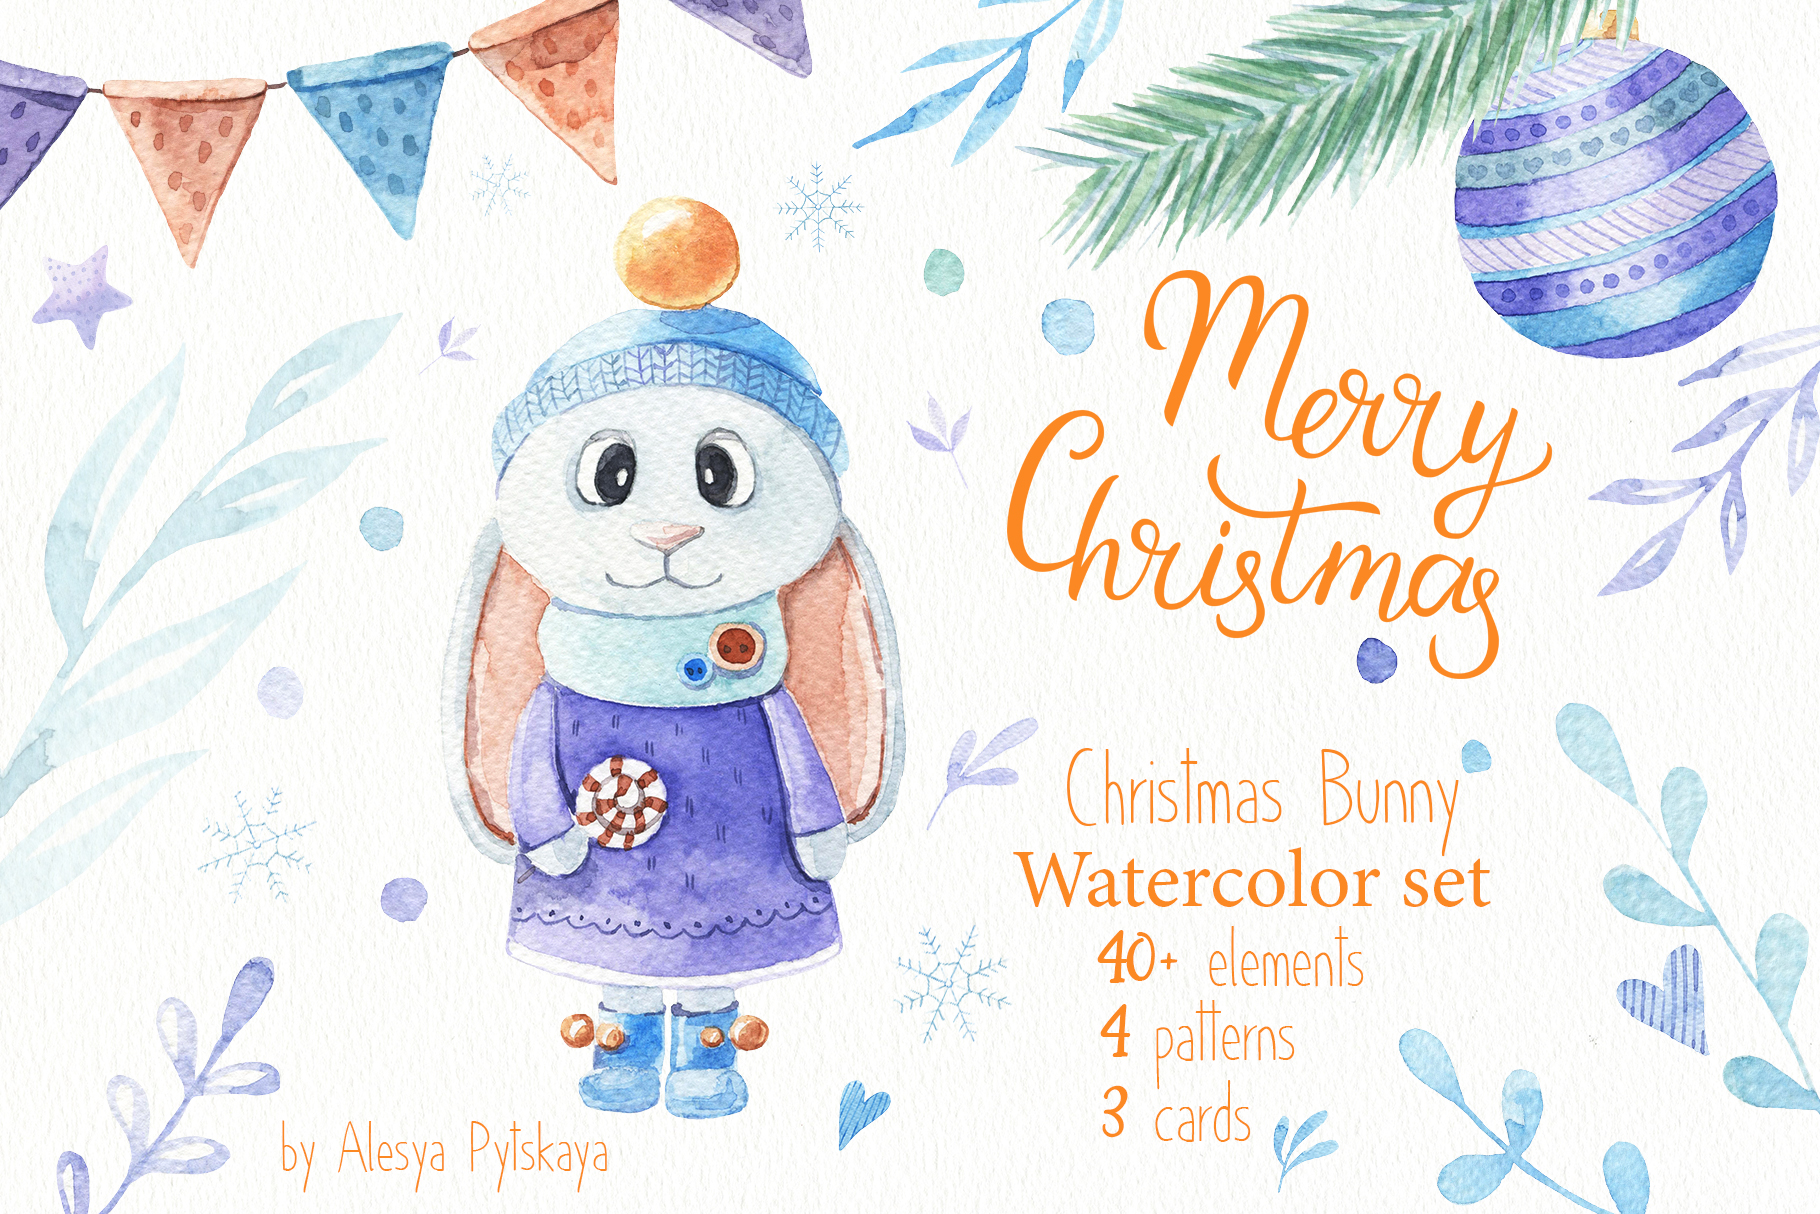 Christmas Bunny - Watercolor set example image 1